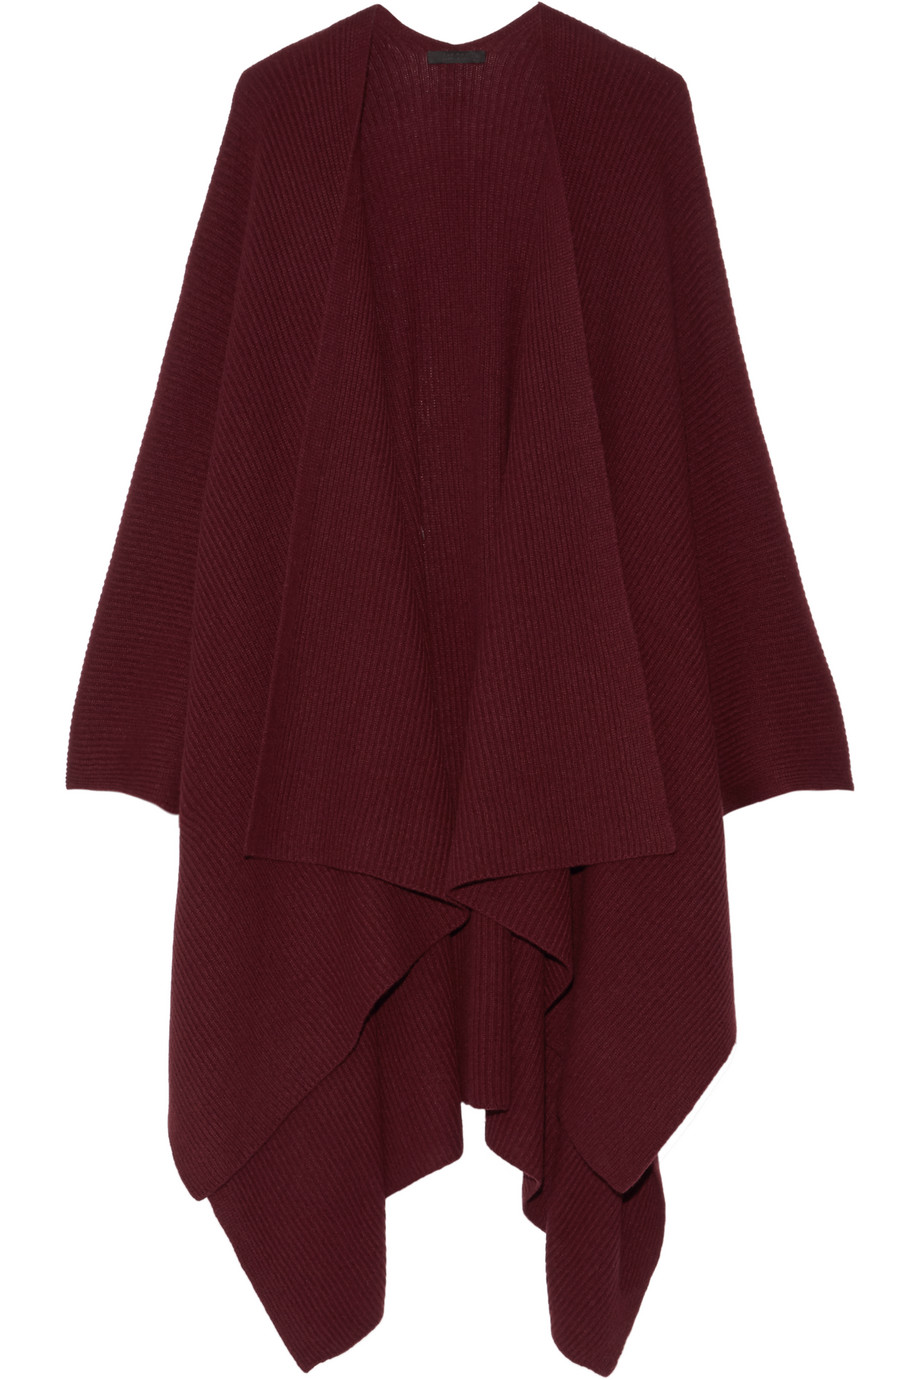 The Row Cappeto Ribbed Cashmere Wrap, Burgundy, Women's, Size: One size